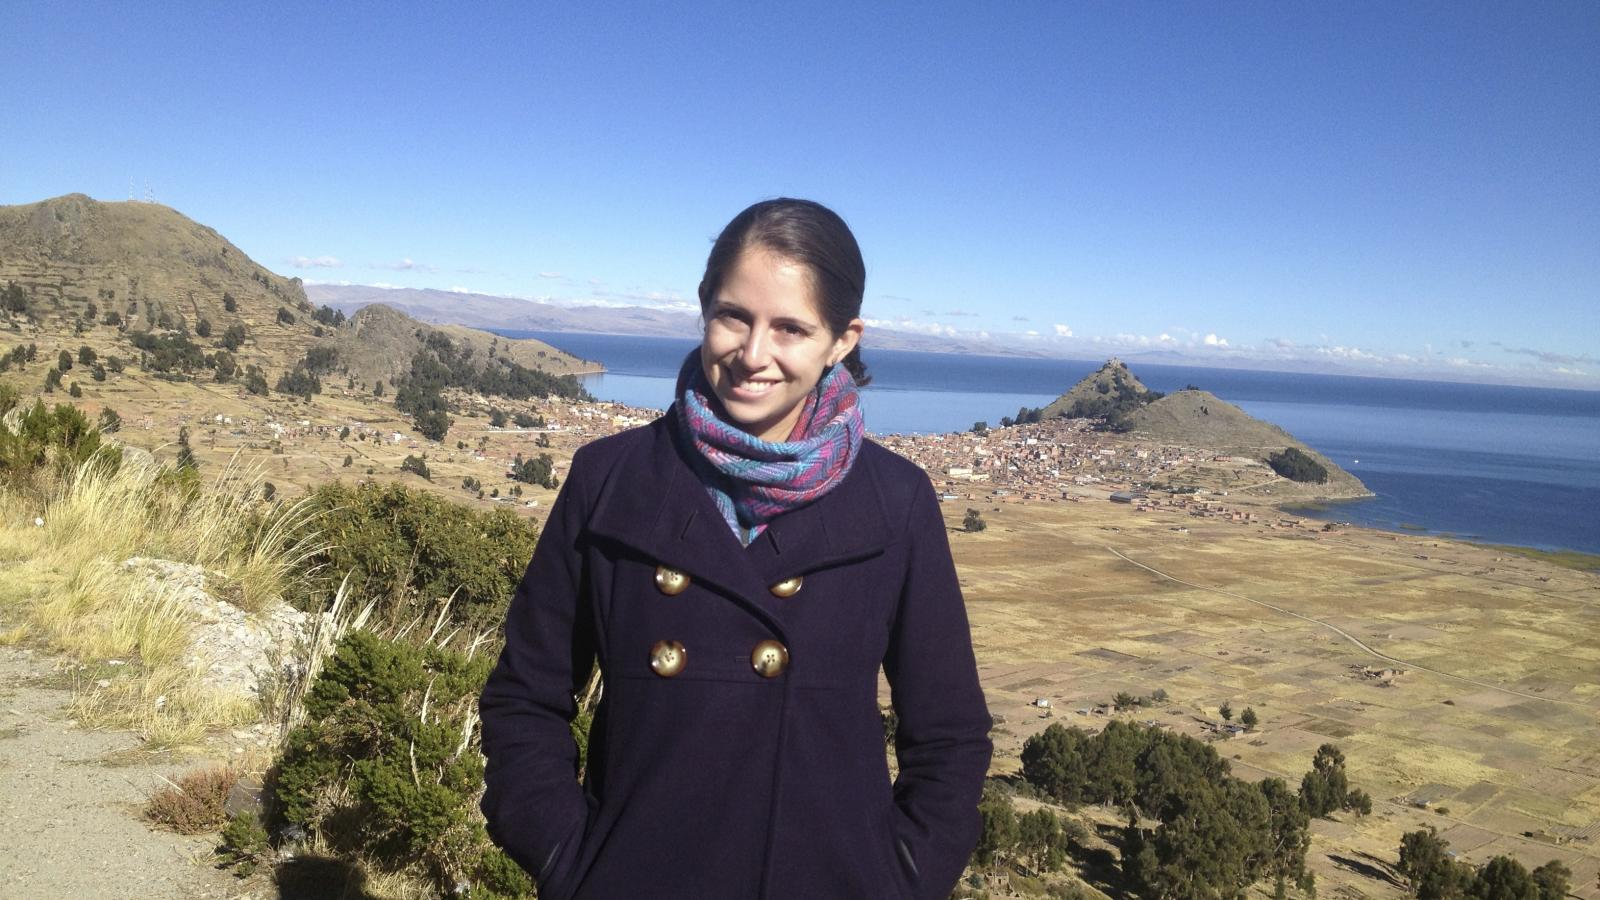 PhD Student Alex Castillo at Lake Titicaca, Bolivia